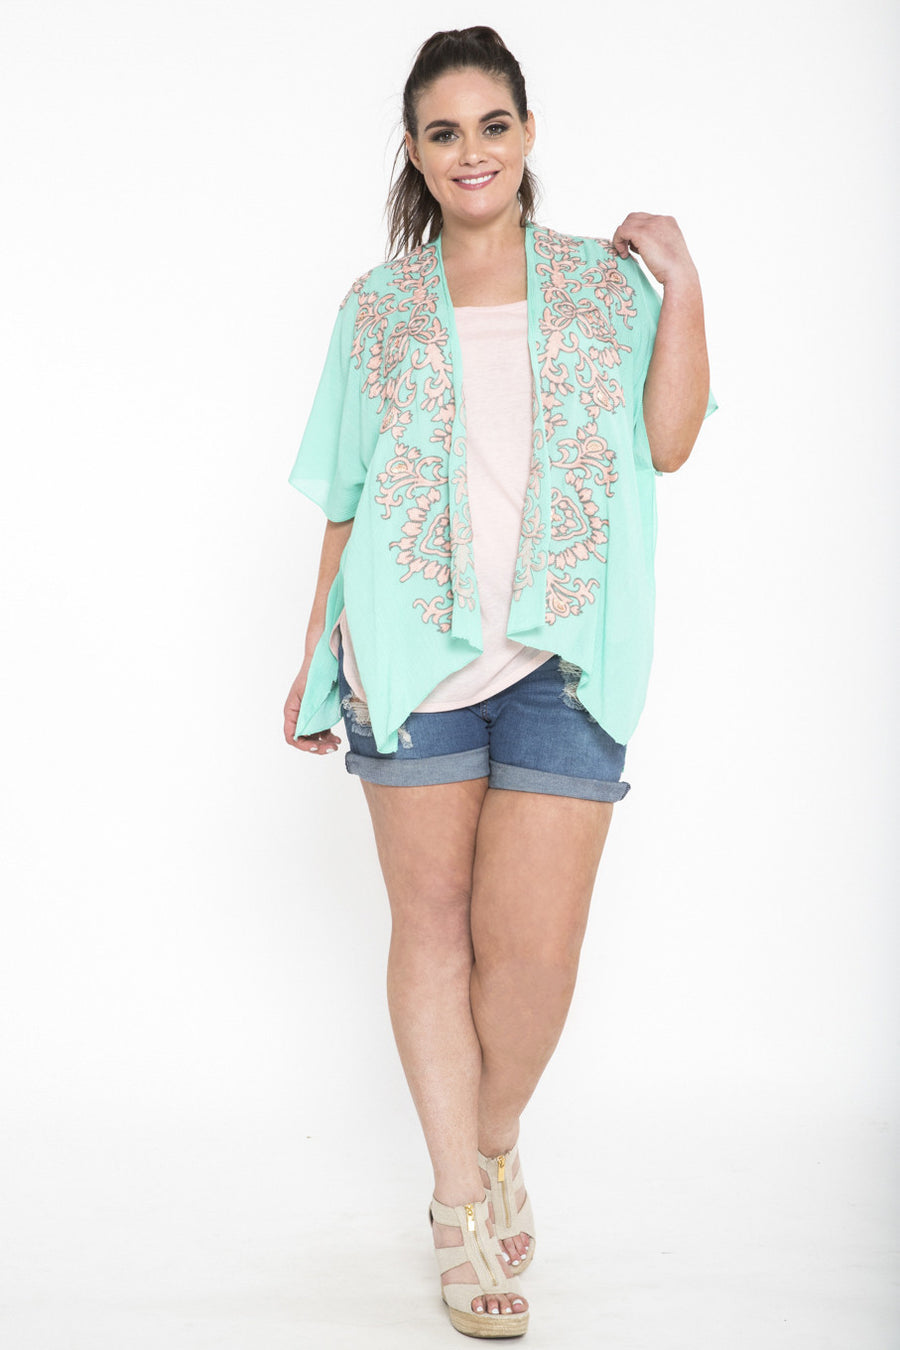 Siloett Coverup One Size Fits All (0-26) Turquoise Embroidered Drape Kimono